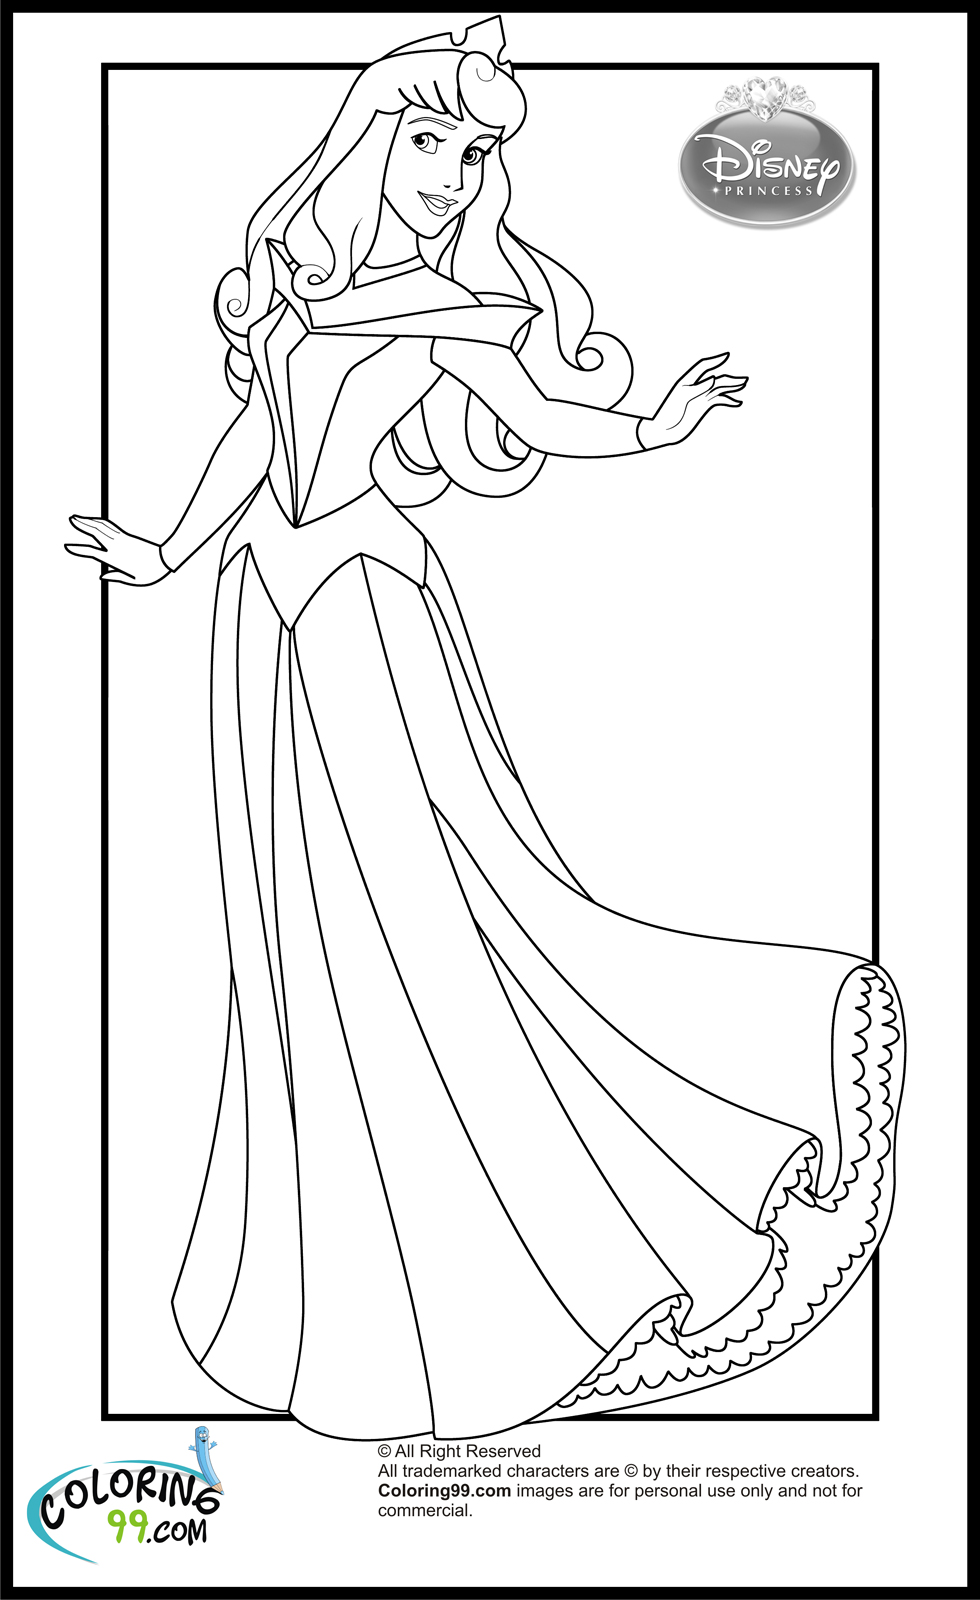 coloring disney disney coloring pages to download and print for free coloring disney 1 2